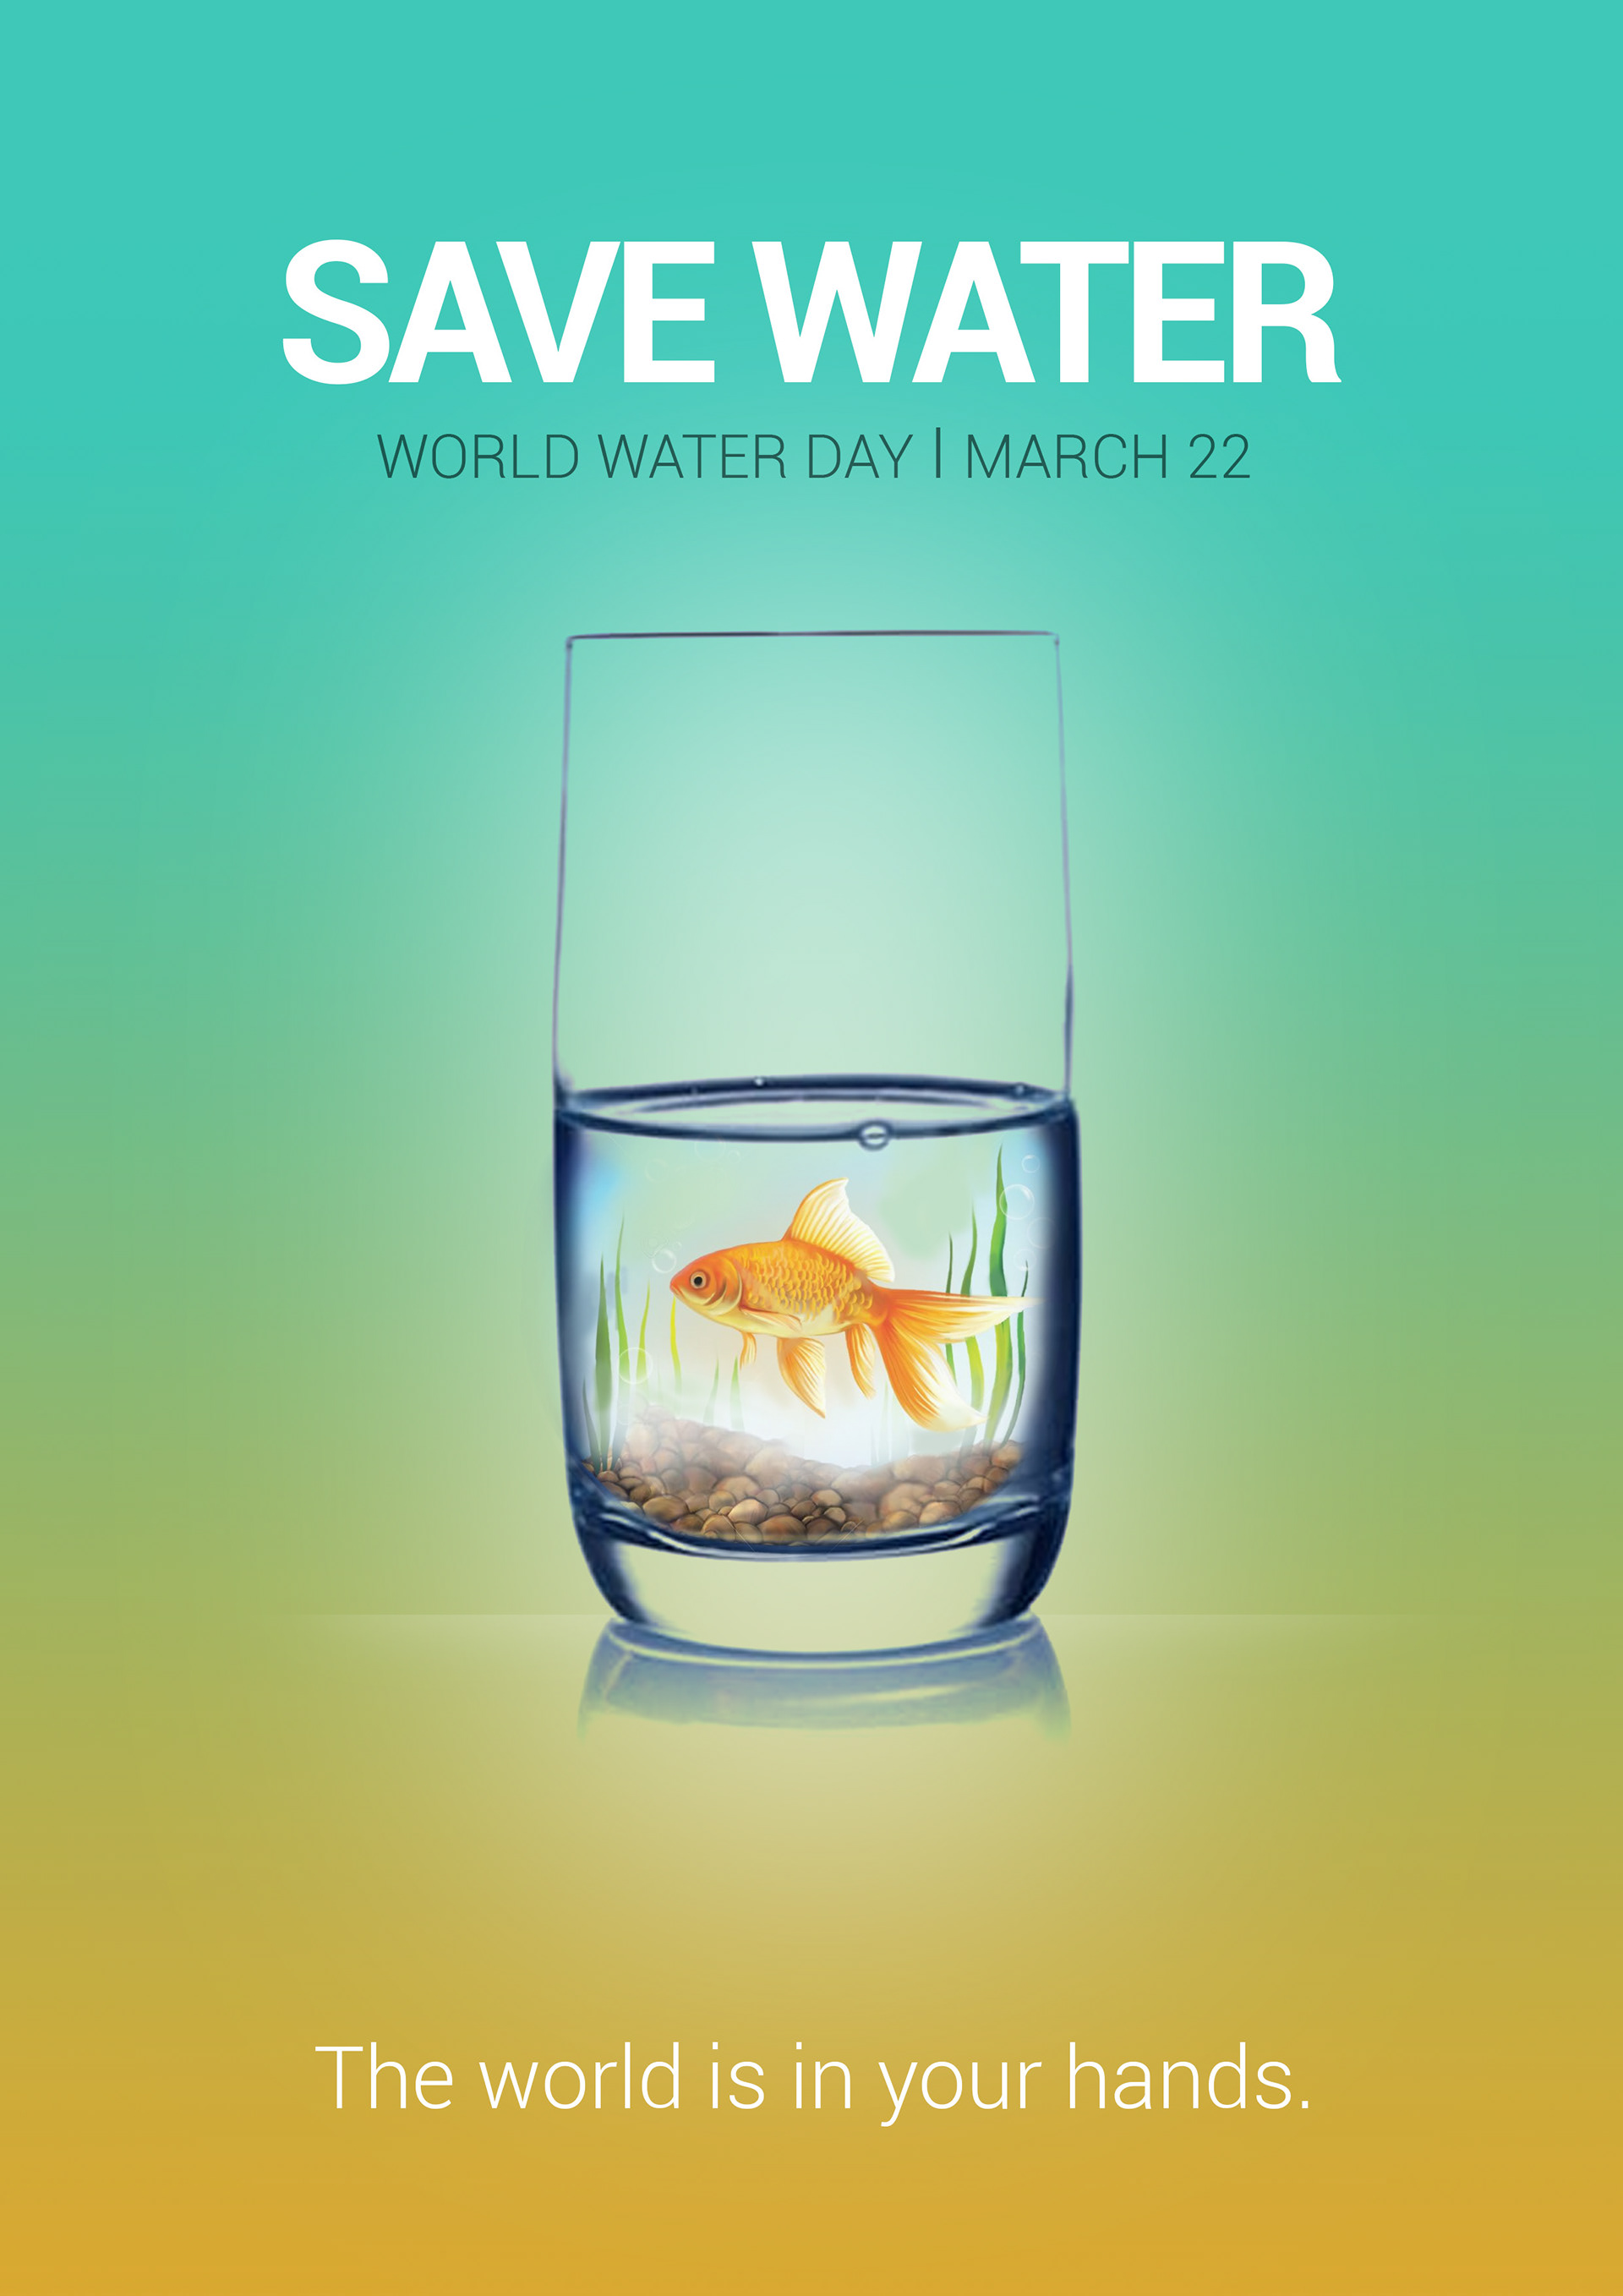 Poster design on save water - Poster Design For Save Water